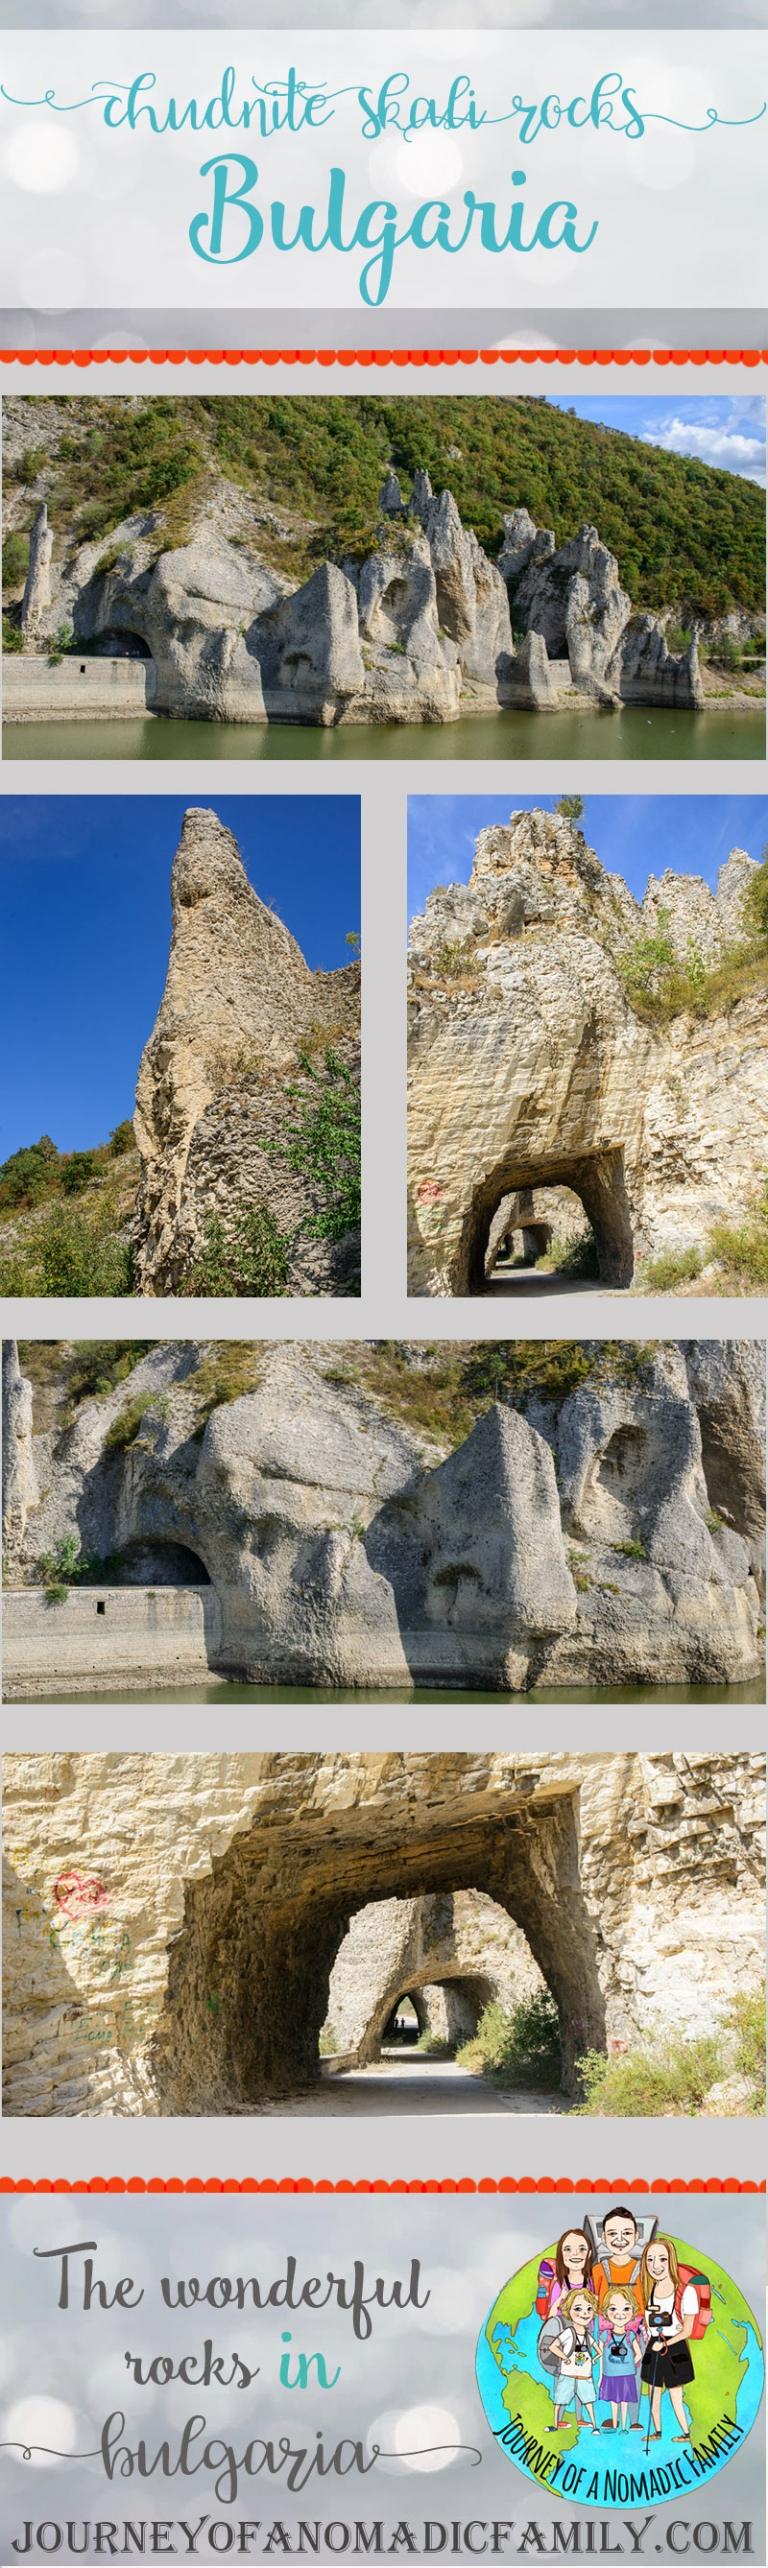 Chudnite Skali or The Wonderful Rocks in Bulgaria. See the video and photos and read what we thought of it.